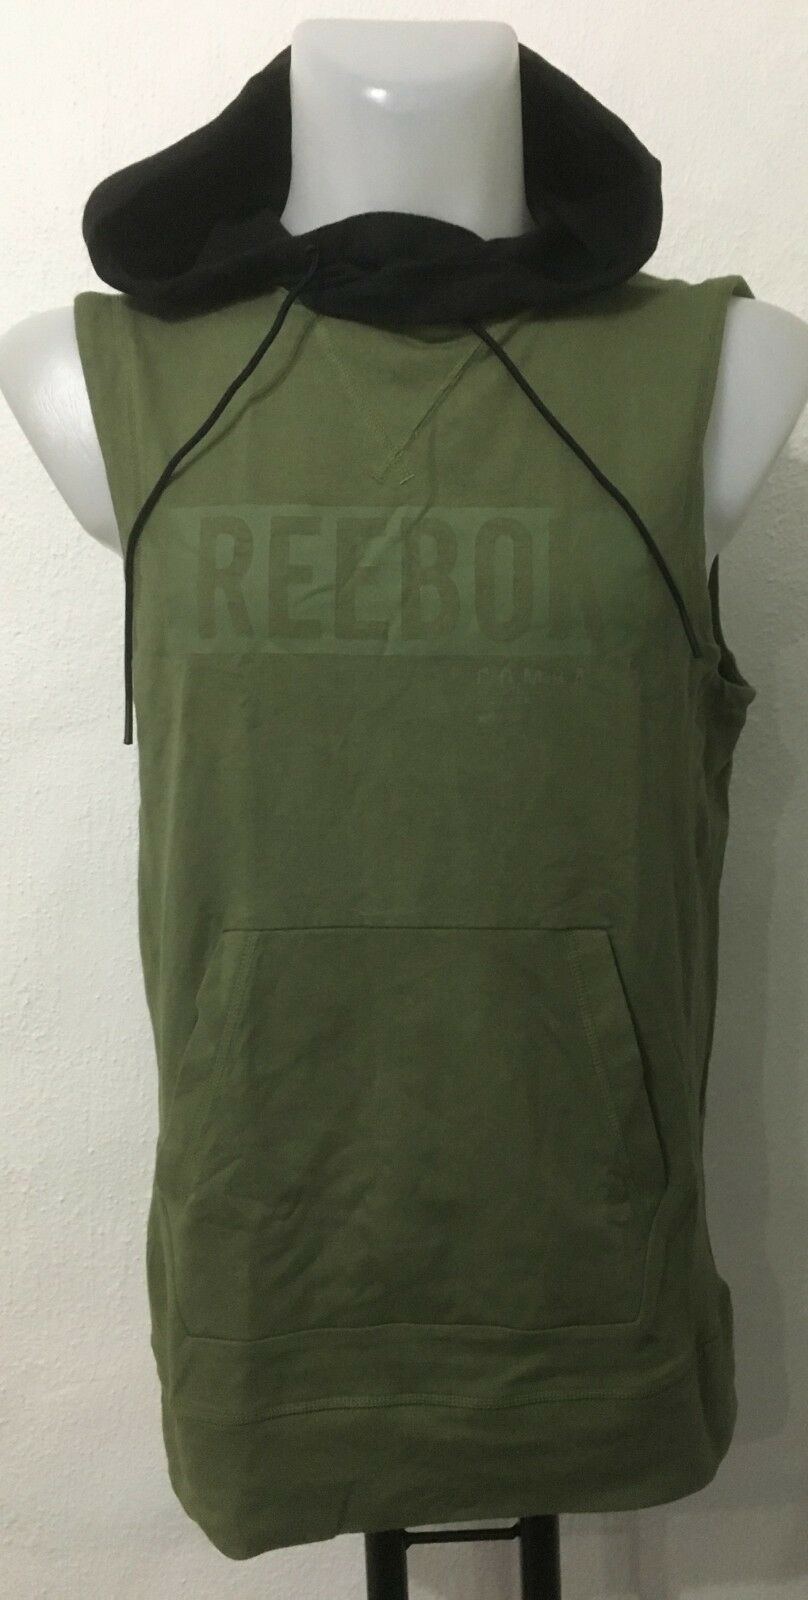 GREEN TRAIN LIKE A FIGHTER SLEEVELESS HOODIE BY REEBOK SIZE MEN'S XL NEW